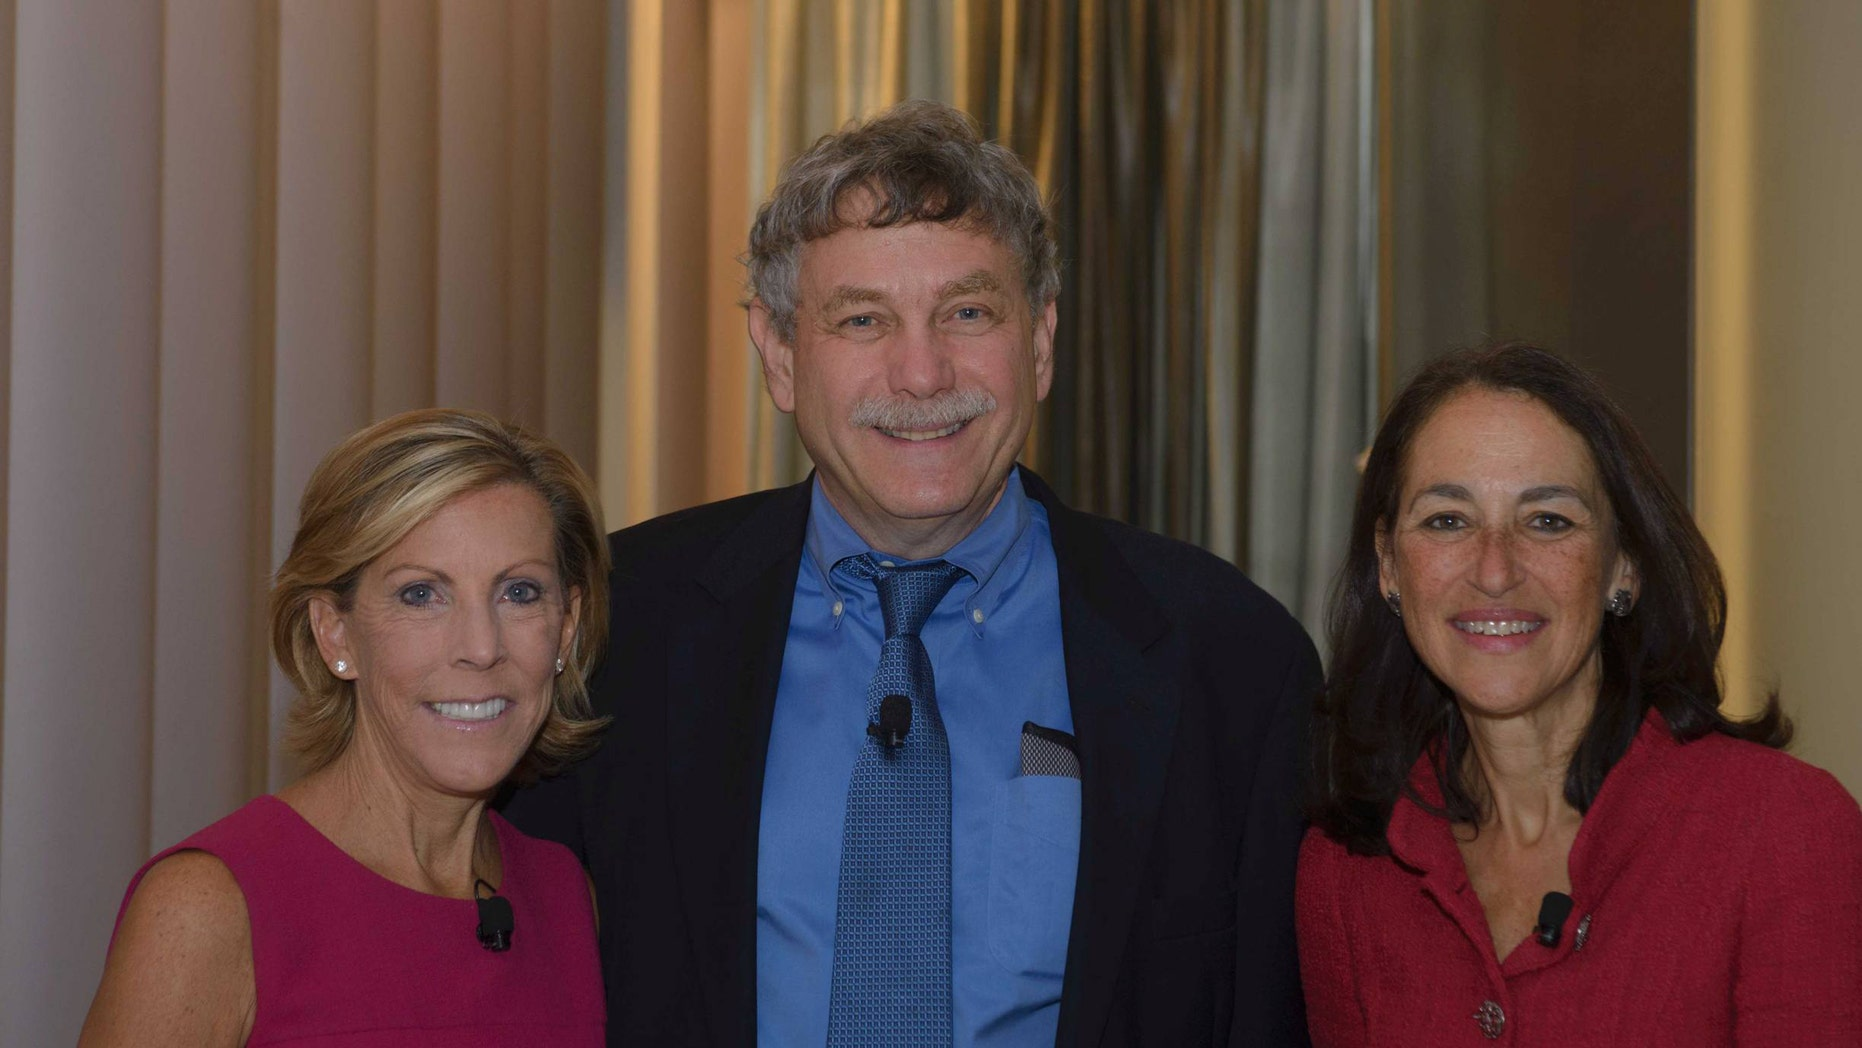 Kathy Giusti, left, with Eric Lander, founding director of the Broad Institute of the Massachusetts Institute of Technology and Harvard University, and Dr. Margaret A. Hamburg, commissioner of the US Food and Drug Administration at an event on September 25, 2013.